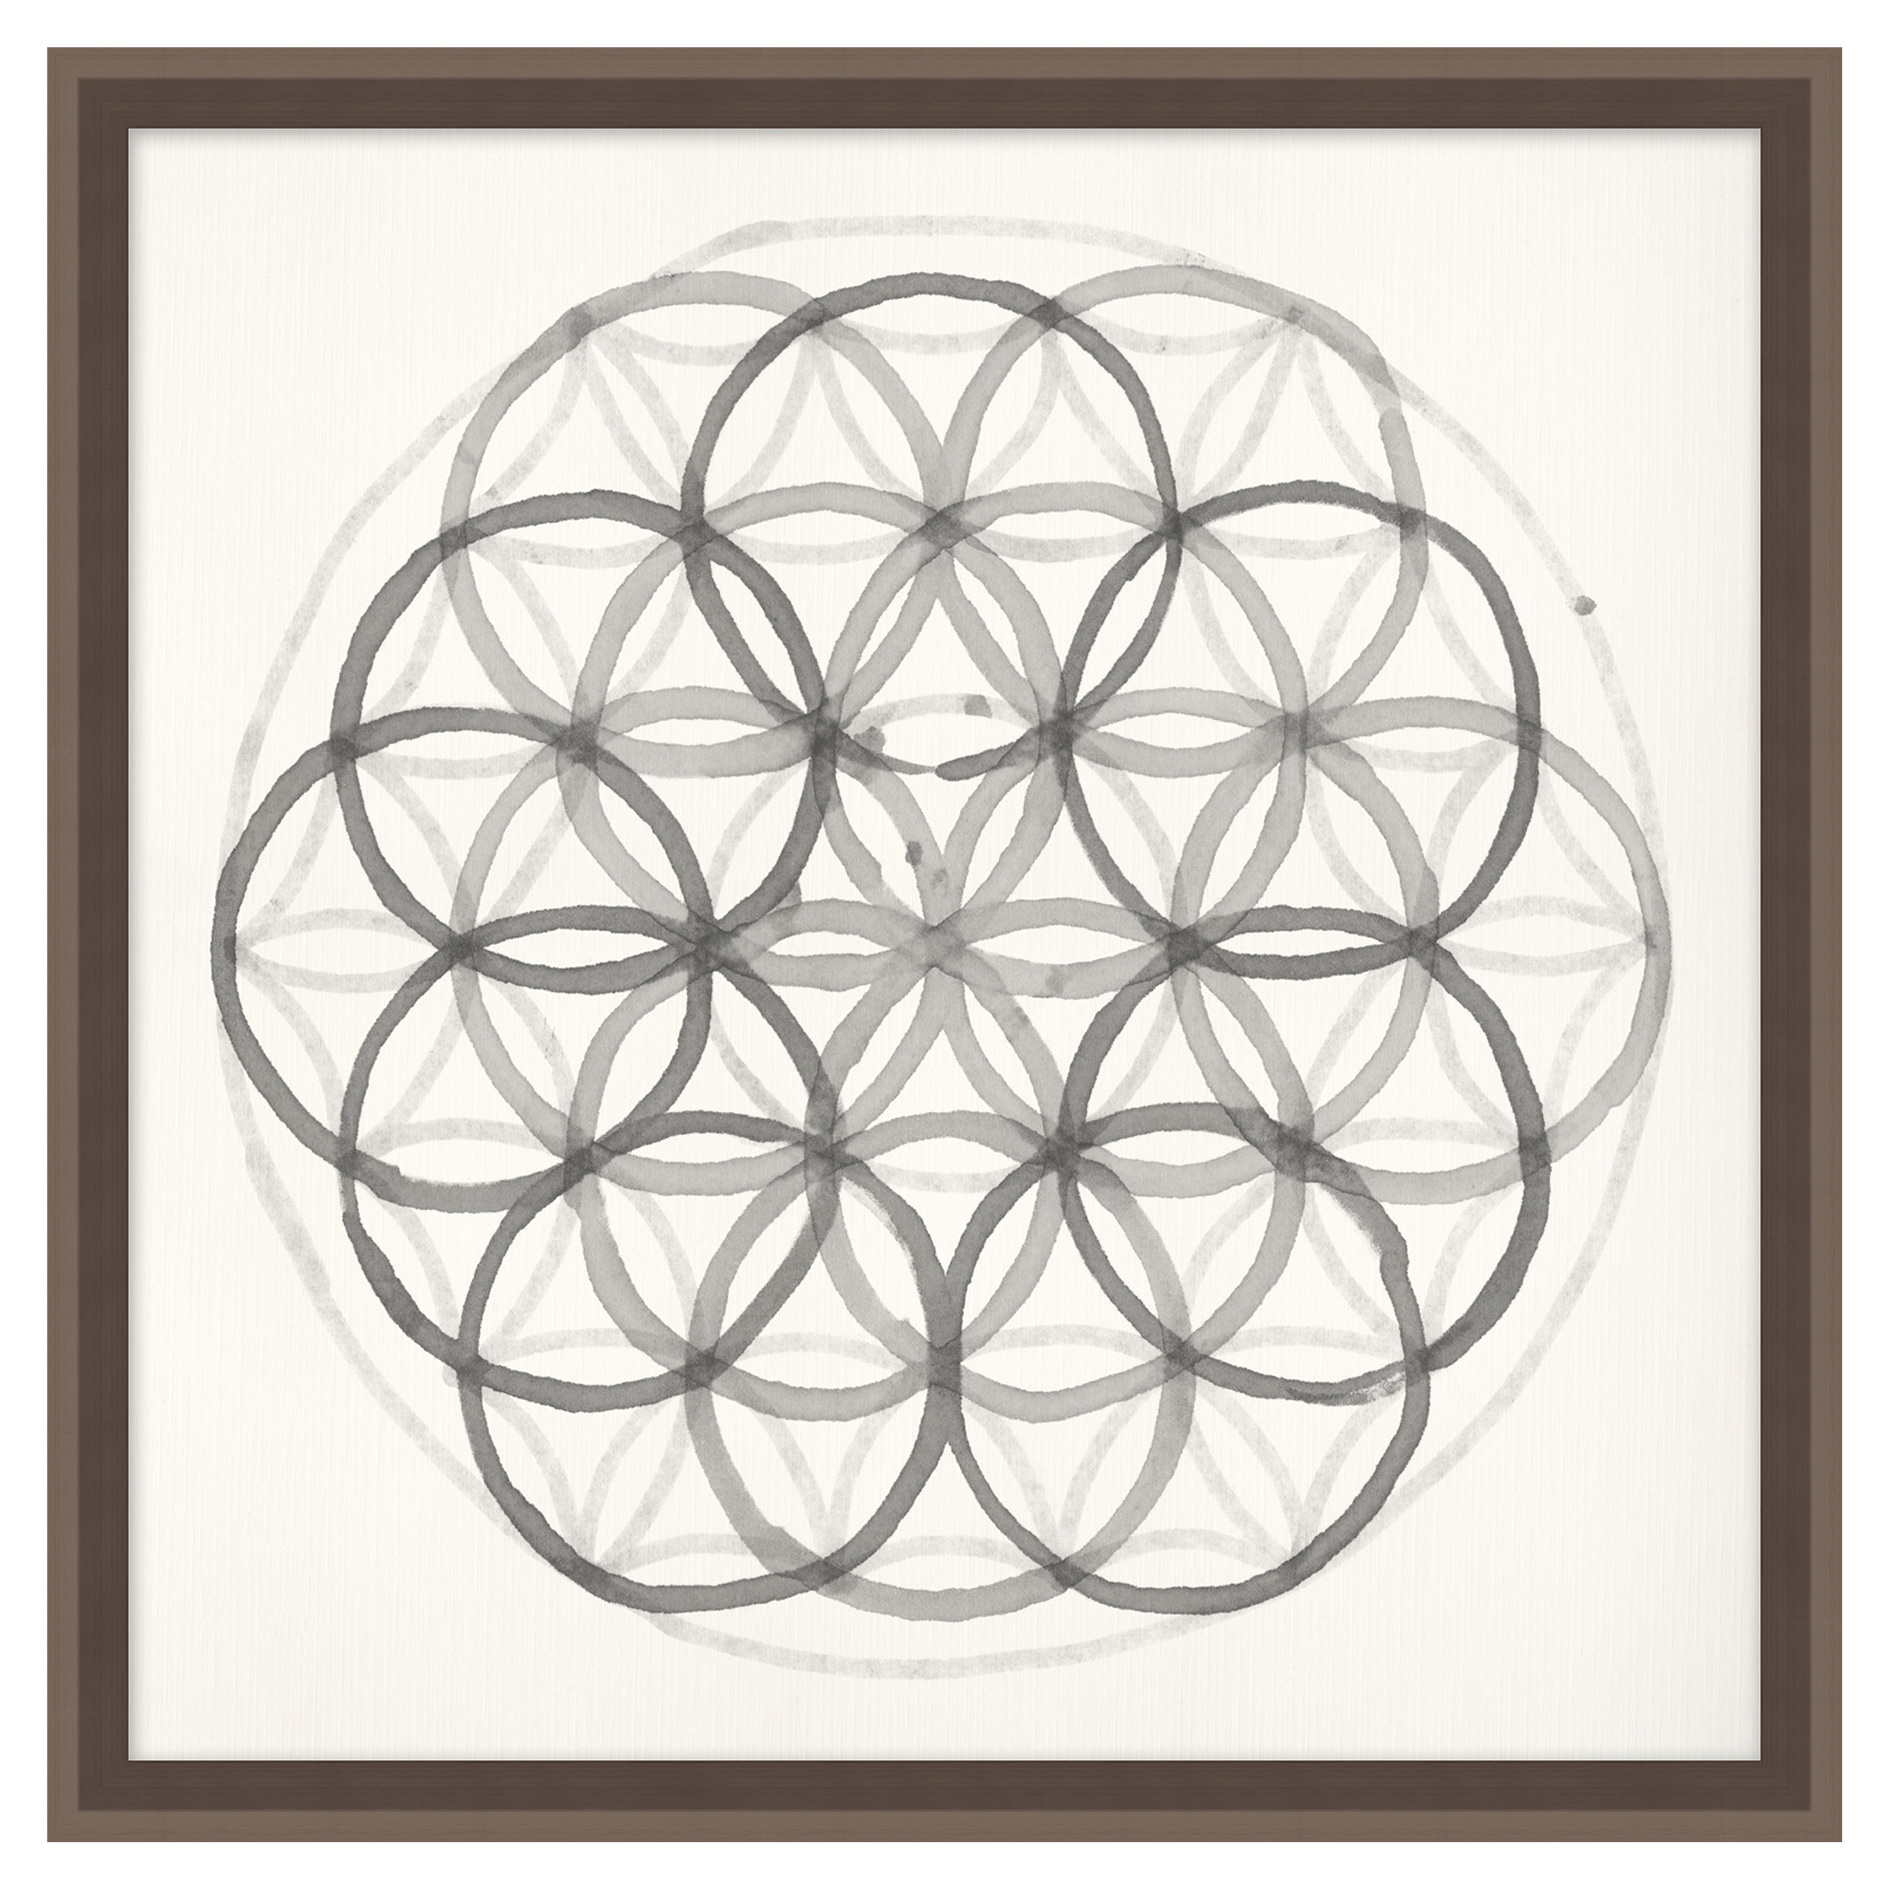 Geometry Fractal Sphere Soft Grey Contemporary Art